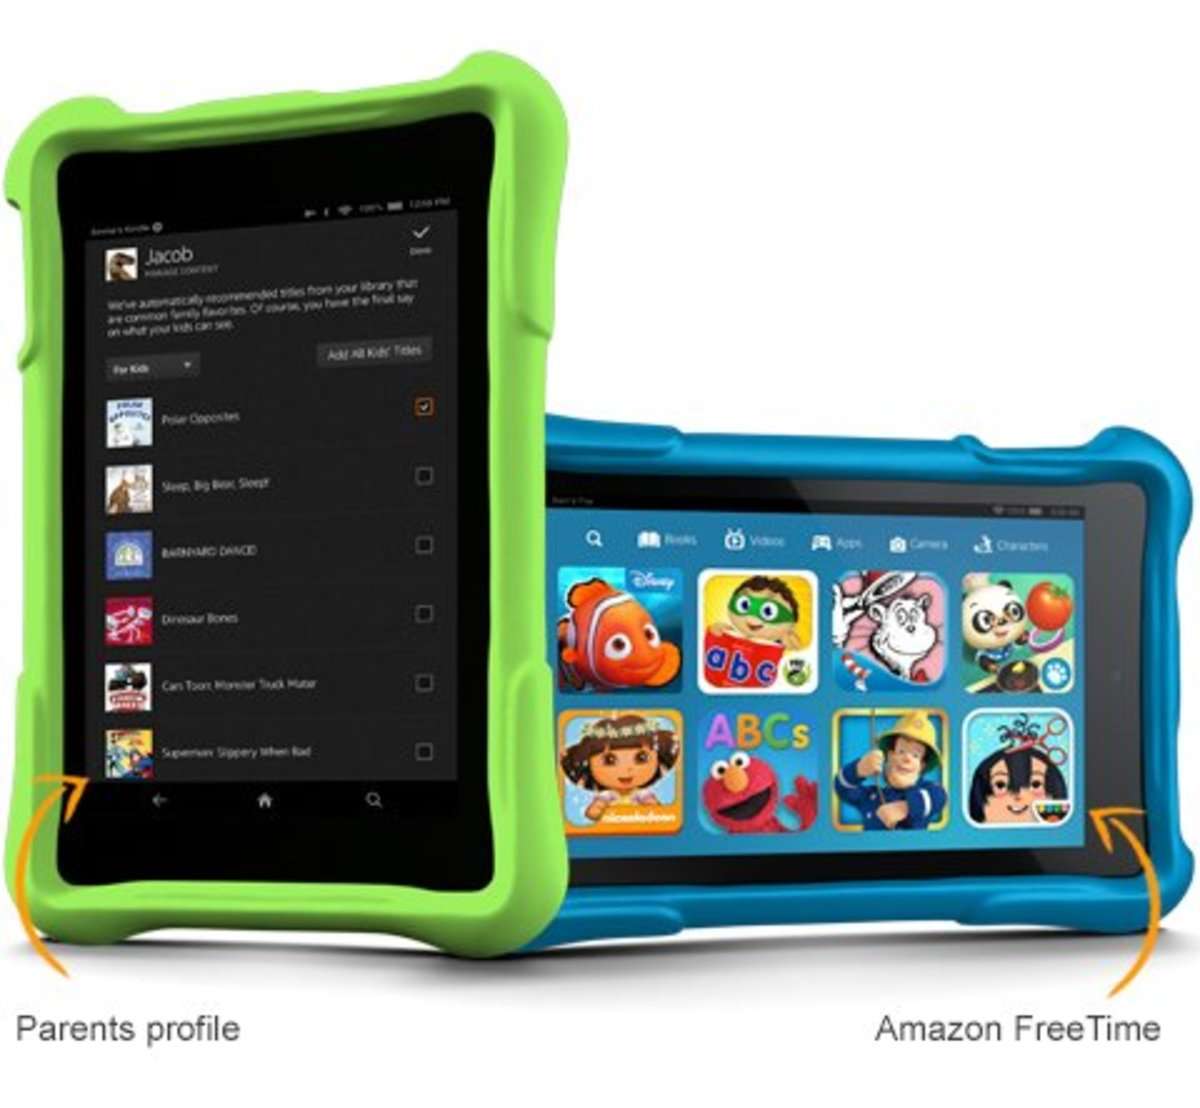 Because the Amazon FreeTime interface for your child is accessed through an app on the Kindle Fire tablet, you can always access the regular tablet interface for an adult experience.